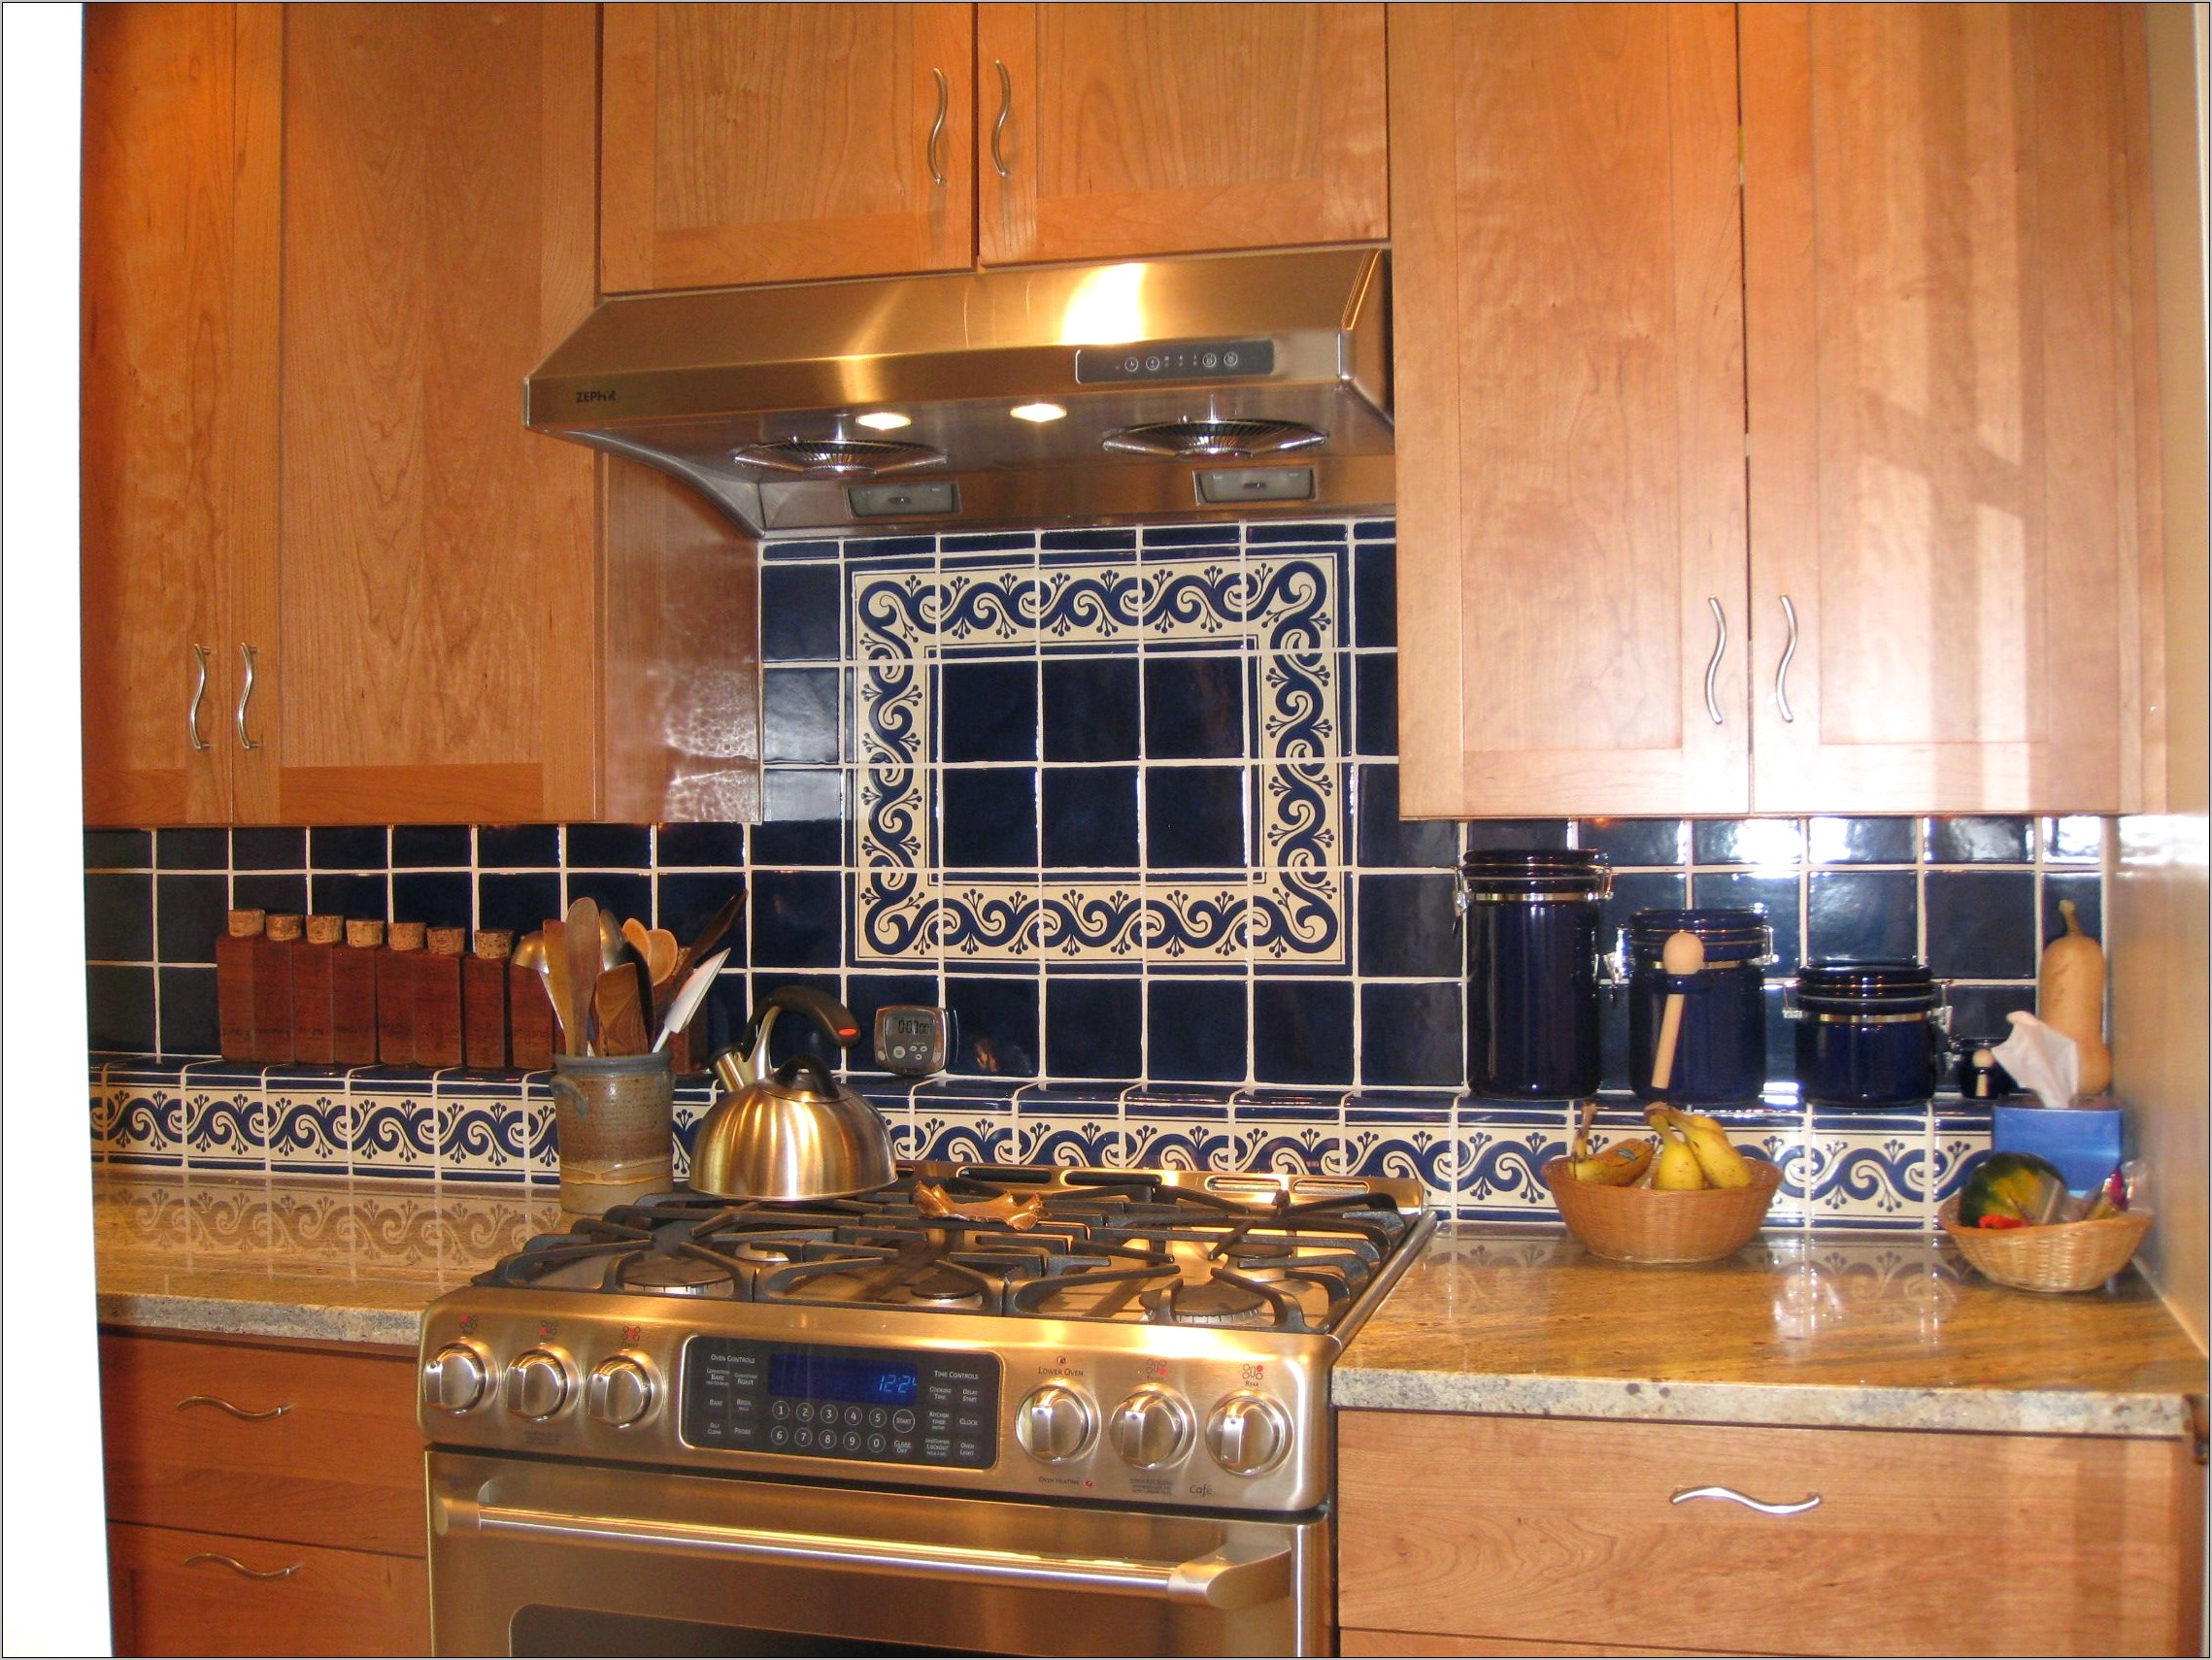 Kitchens Decorated With Mexican Tiles